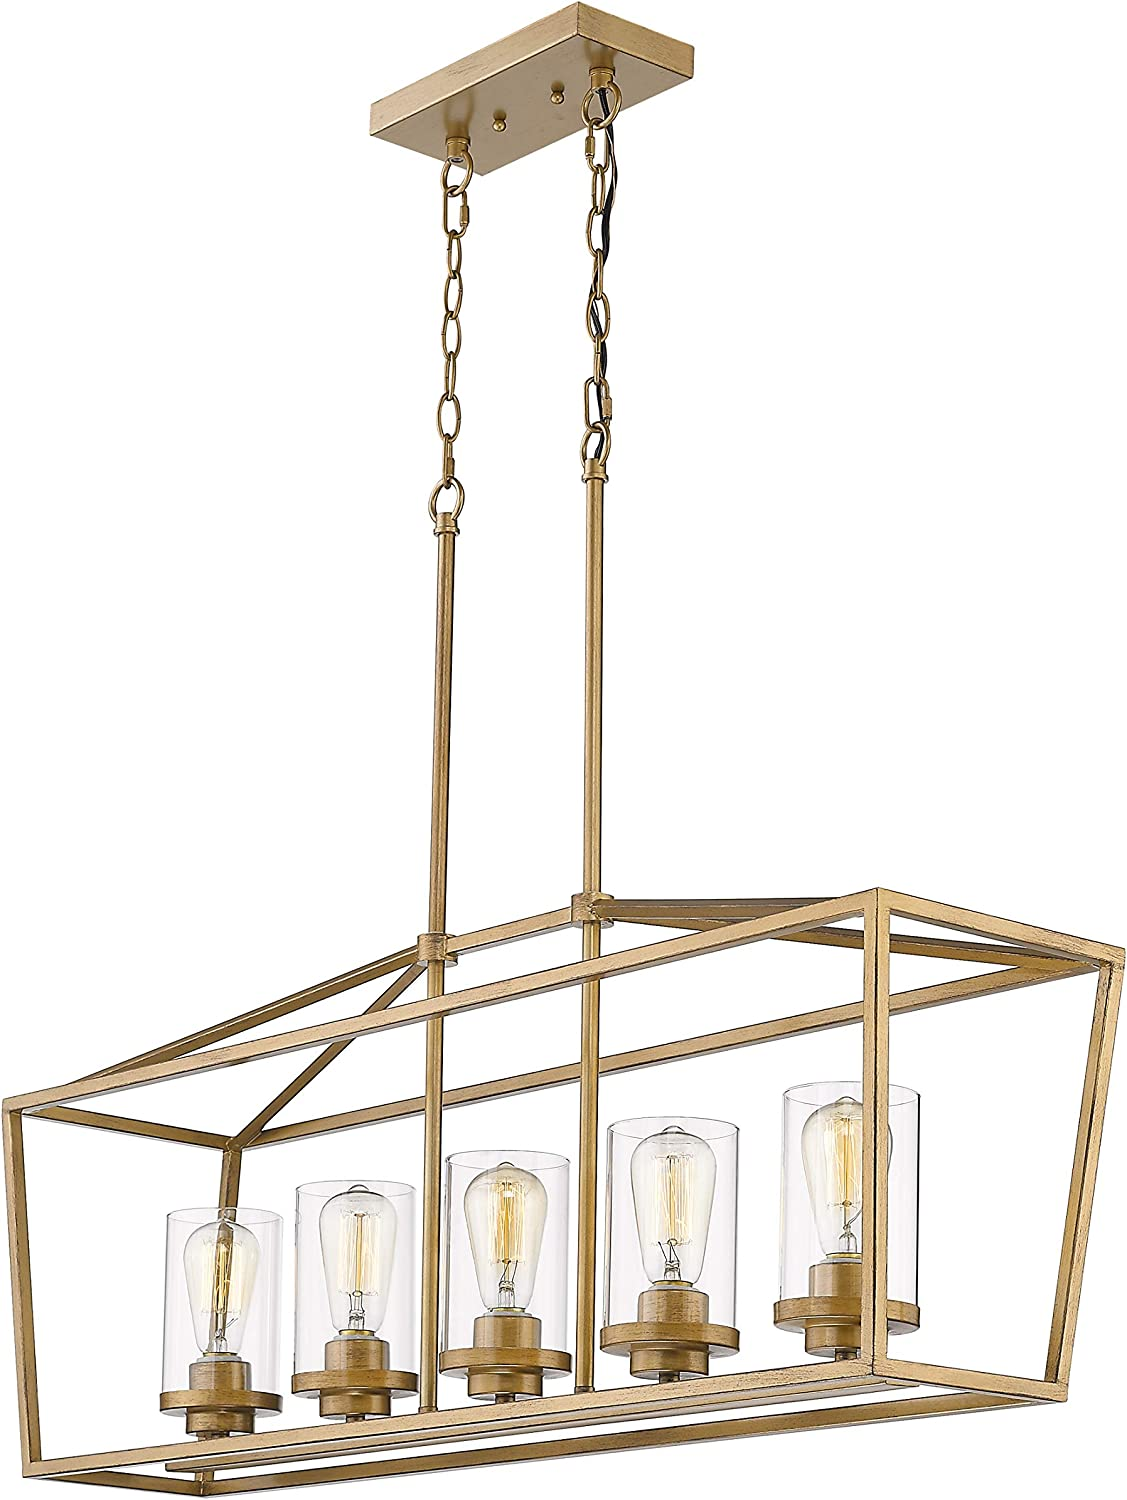 Emliviar 5-Light Pendant Lighting for Kitchen Island, Dining Room Lighting Fixture, Antique Gold Finish with Clear Glass Shade, P3033A-5LP-1